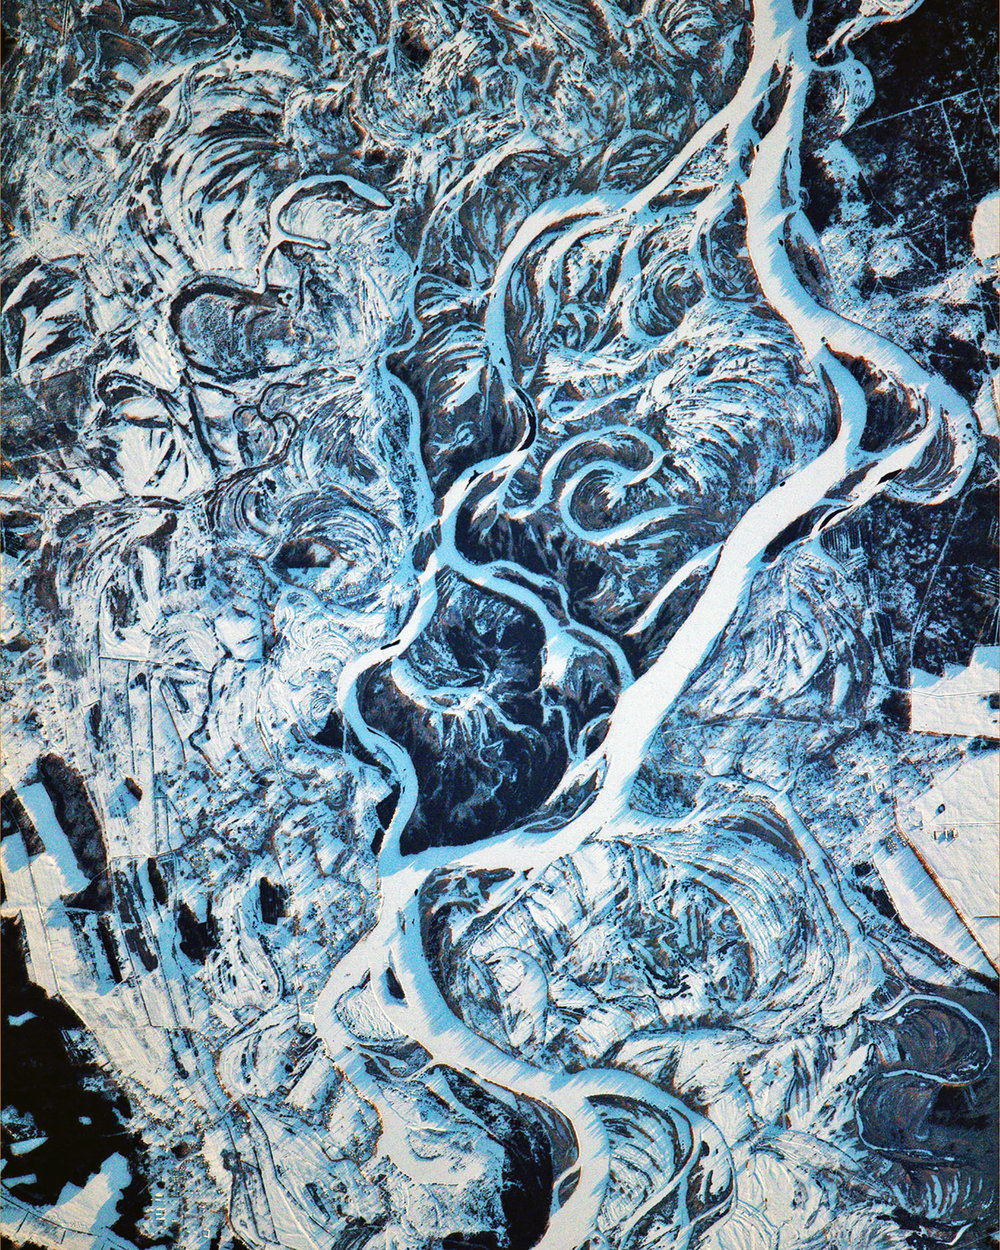 "Swirling snow drifts accent the terrain surrounding the Dnieper River, which flows for roughly 1,400 miles (2,200 km) from Russia to the Black Sea. The Dnieper is the longest river in the Ukraine and Belarus, and the fourth-longest river in Europe. This amazing image was captured by European Space Agency astronaut Thomas Pesquet while aboard the International Space Station in February 2017.  51°11'35.0""N, 30°31'25.8""E  Source imagery: NASA - National Aeronautics and Space Administration"